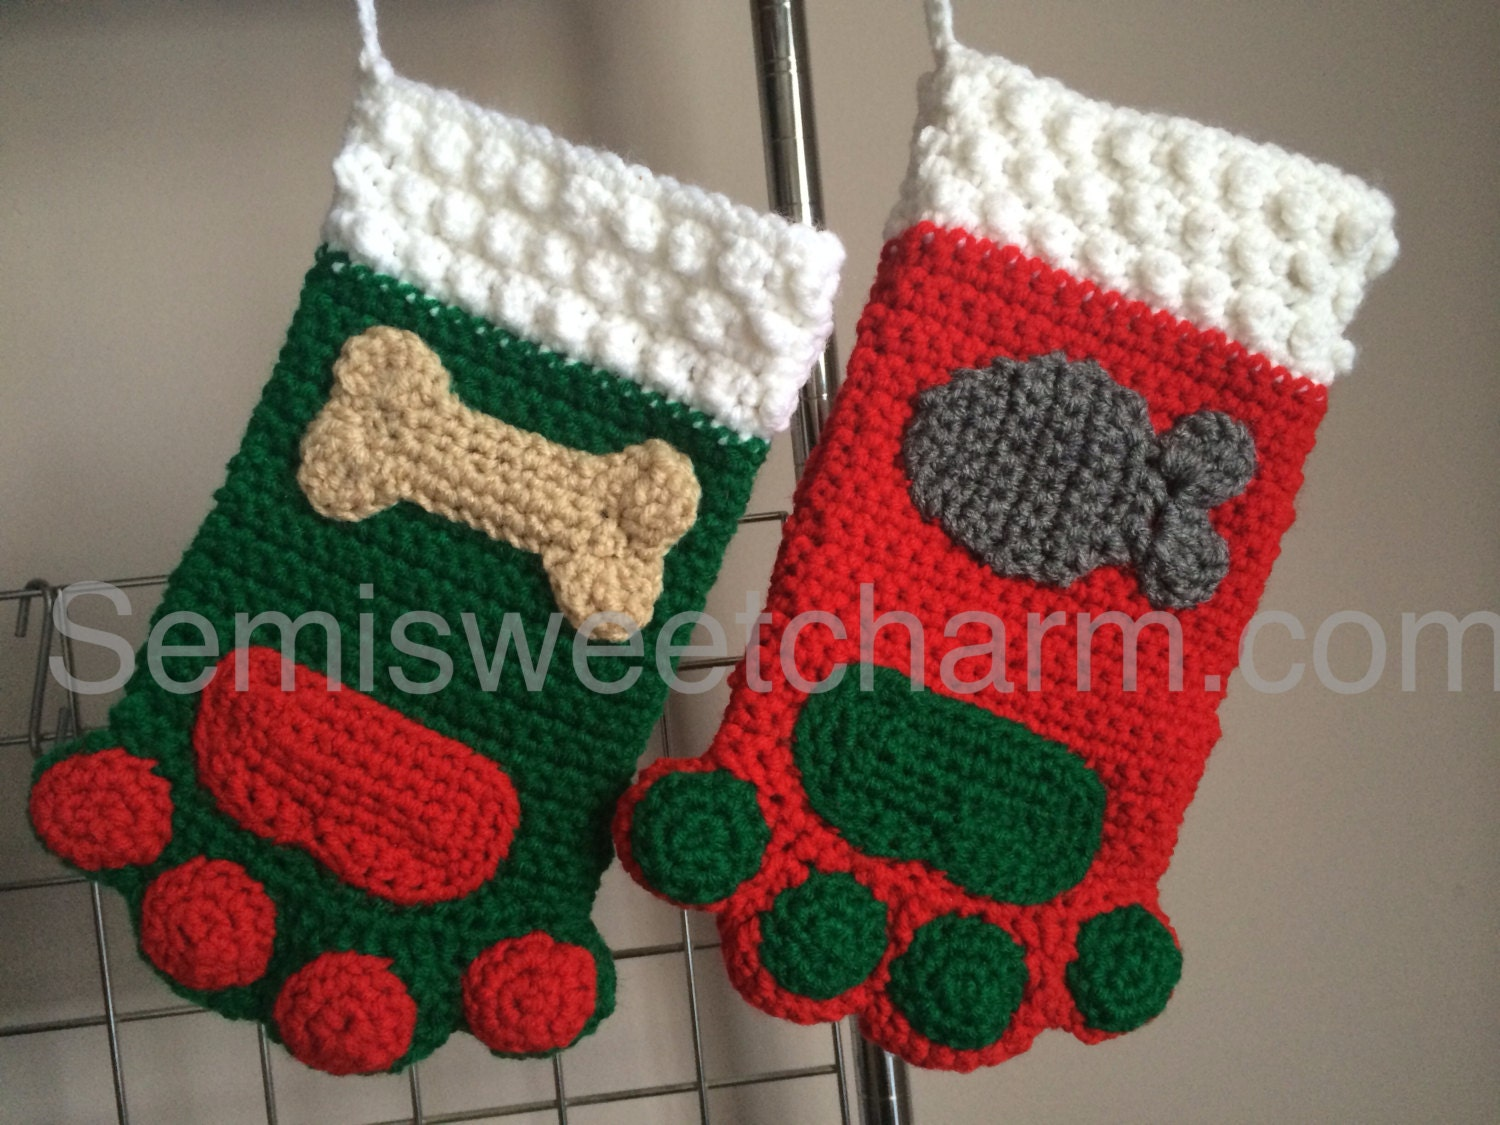 Paw print stocking christmas holiday dog cat pet photo prop pdf paw print stocking christmas holiday dog cat pet photo prop pdf crochet digital download pattern bankloansurffo Image collections